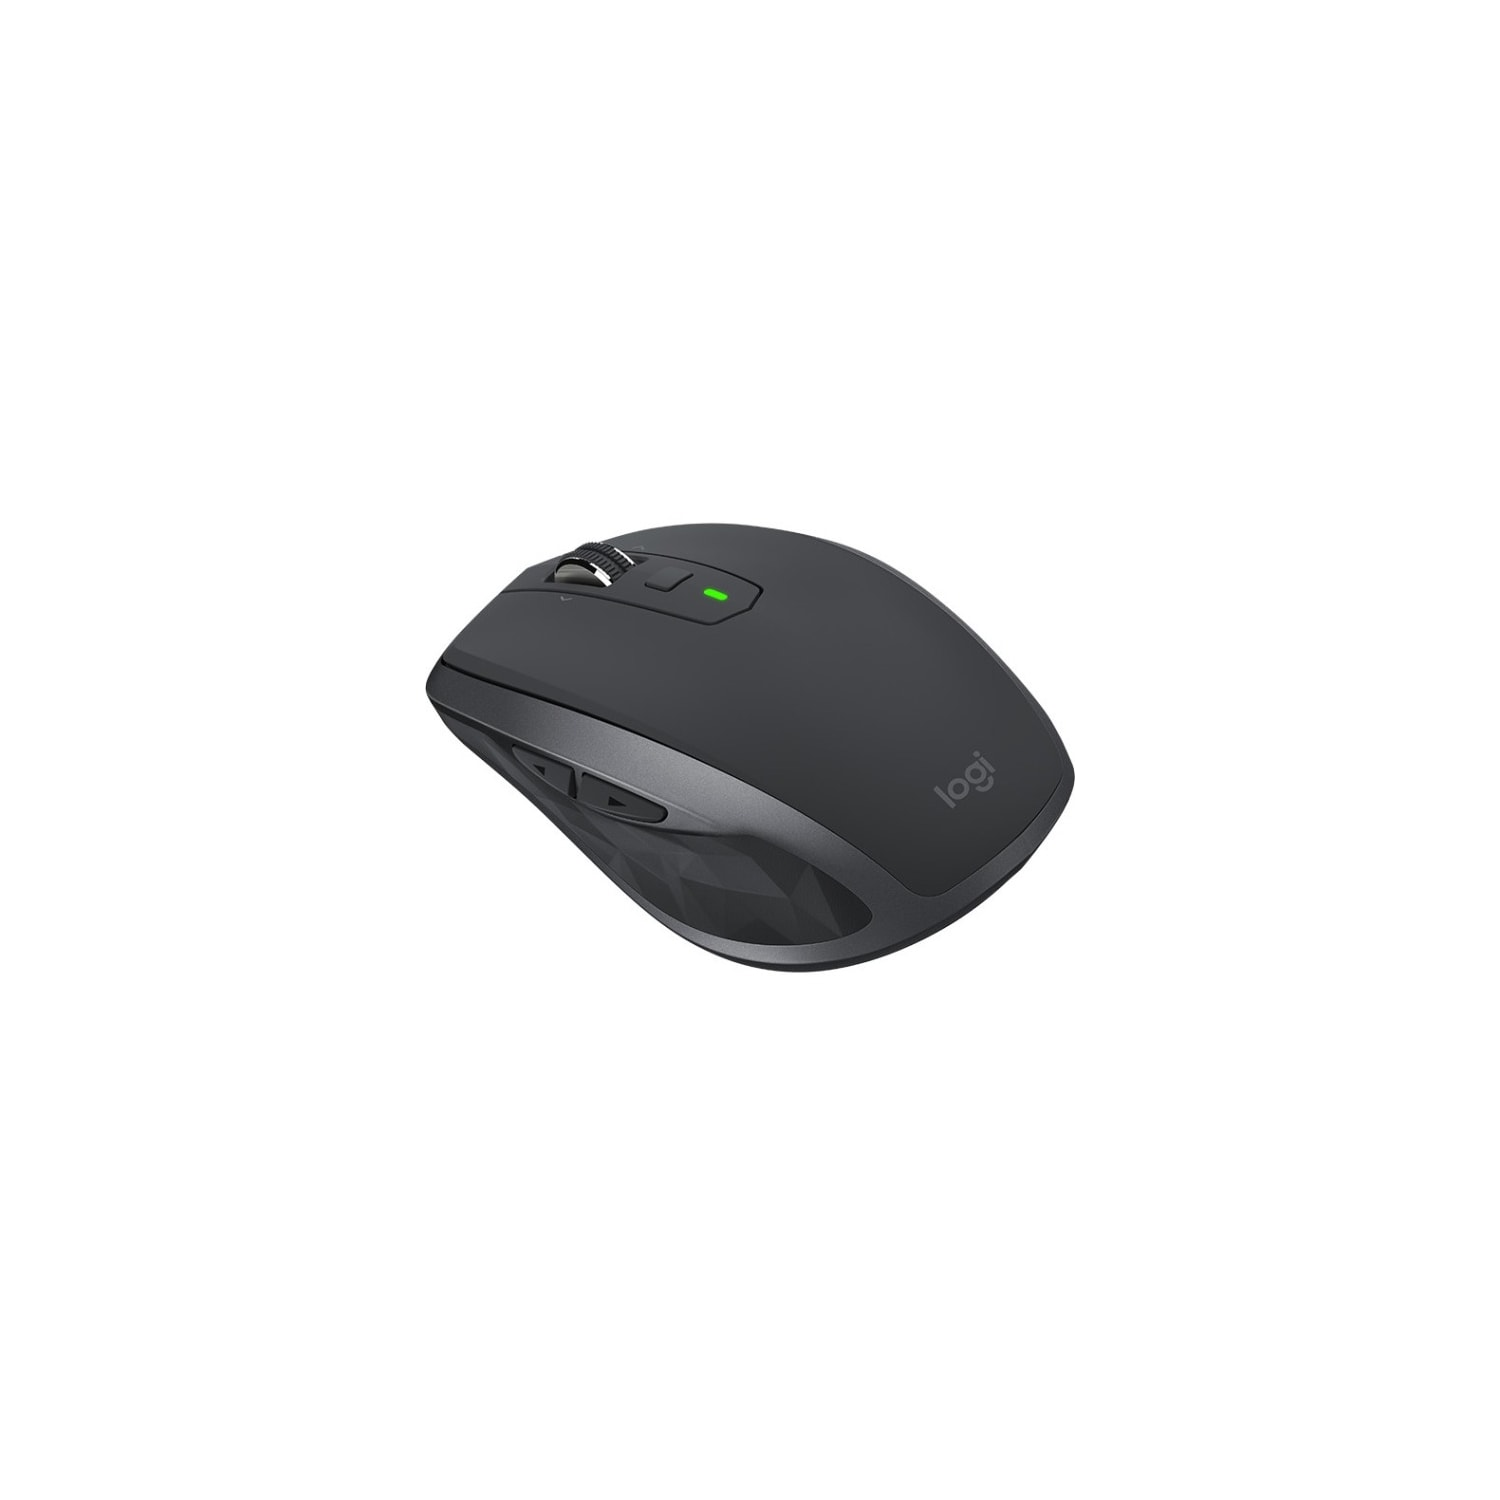 Logitech MX Anywhere 2S Mouse - Darkfield - Wireless - 7 Button(s) -  Graphite